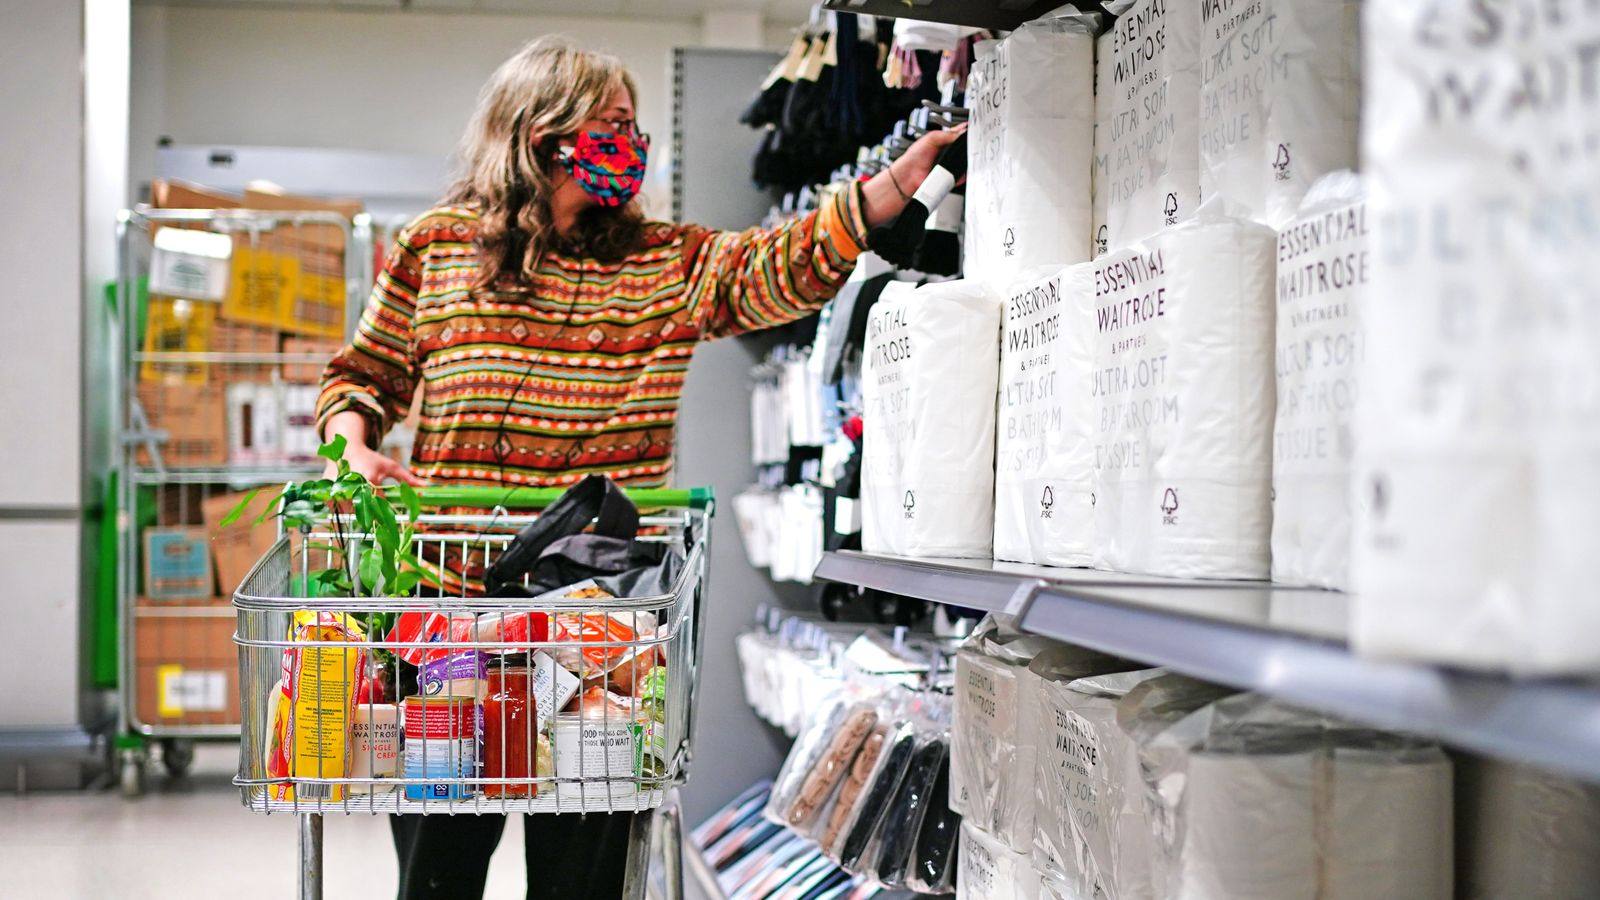 COVID-19: Supermarkets will encourage customers to keep wearing masks but won't bar those who don't